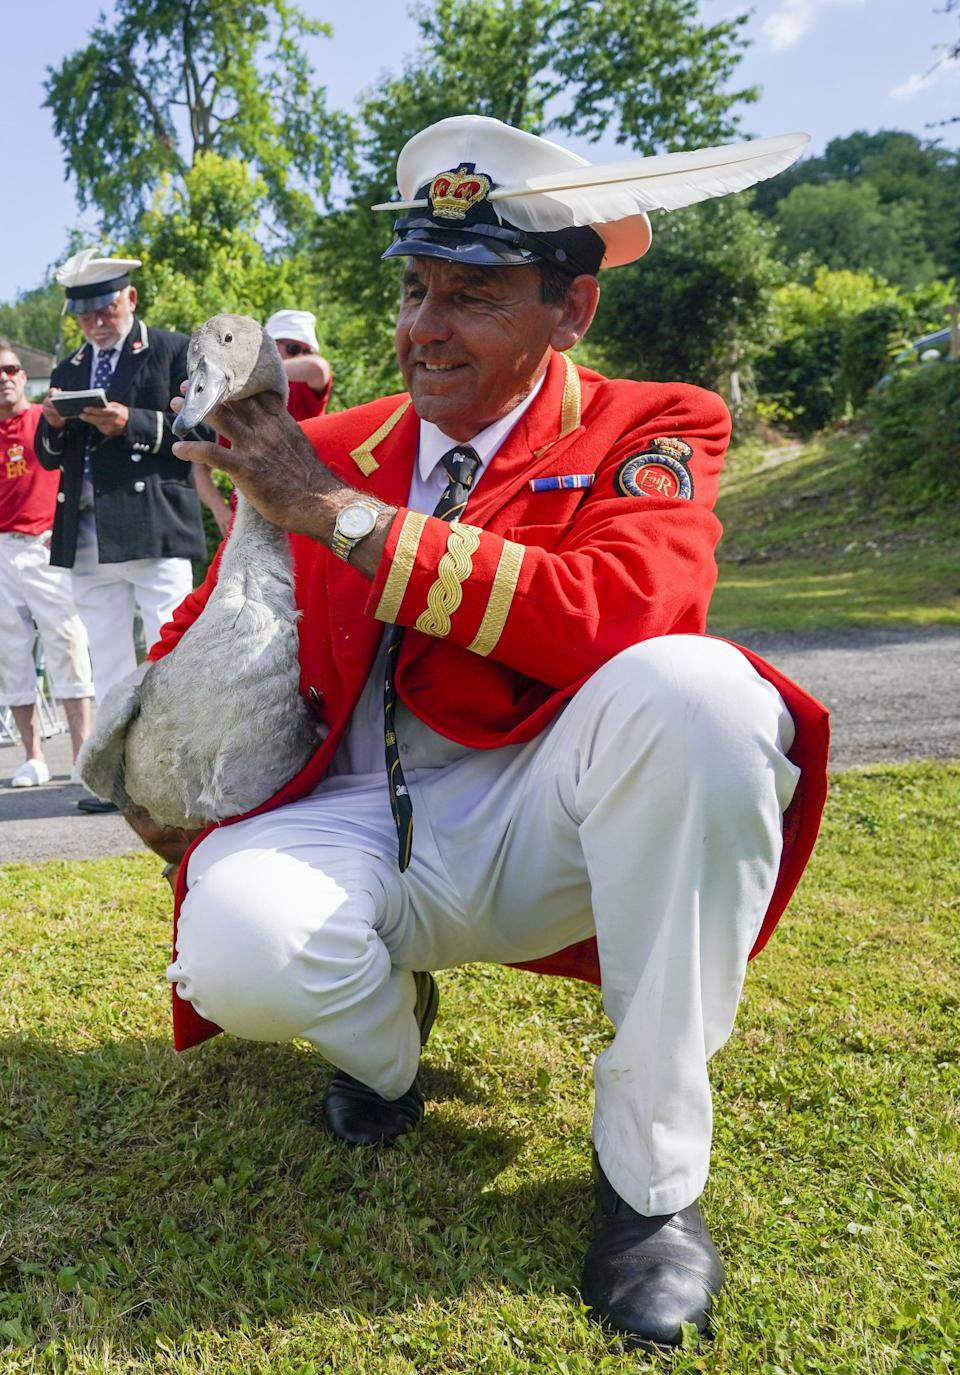 David Barber inspects a swan (Steve Parsons/PA) (PA Wire)